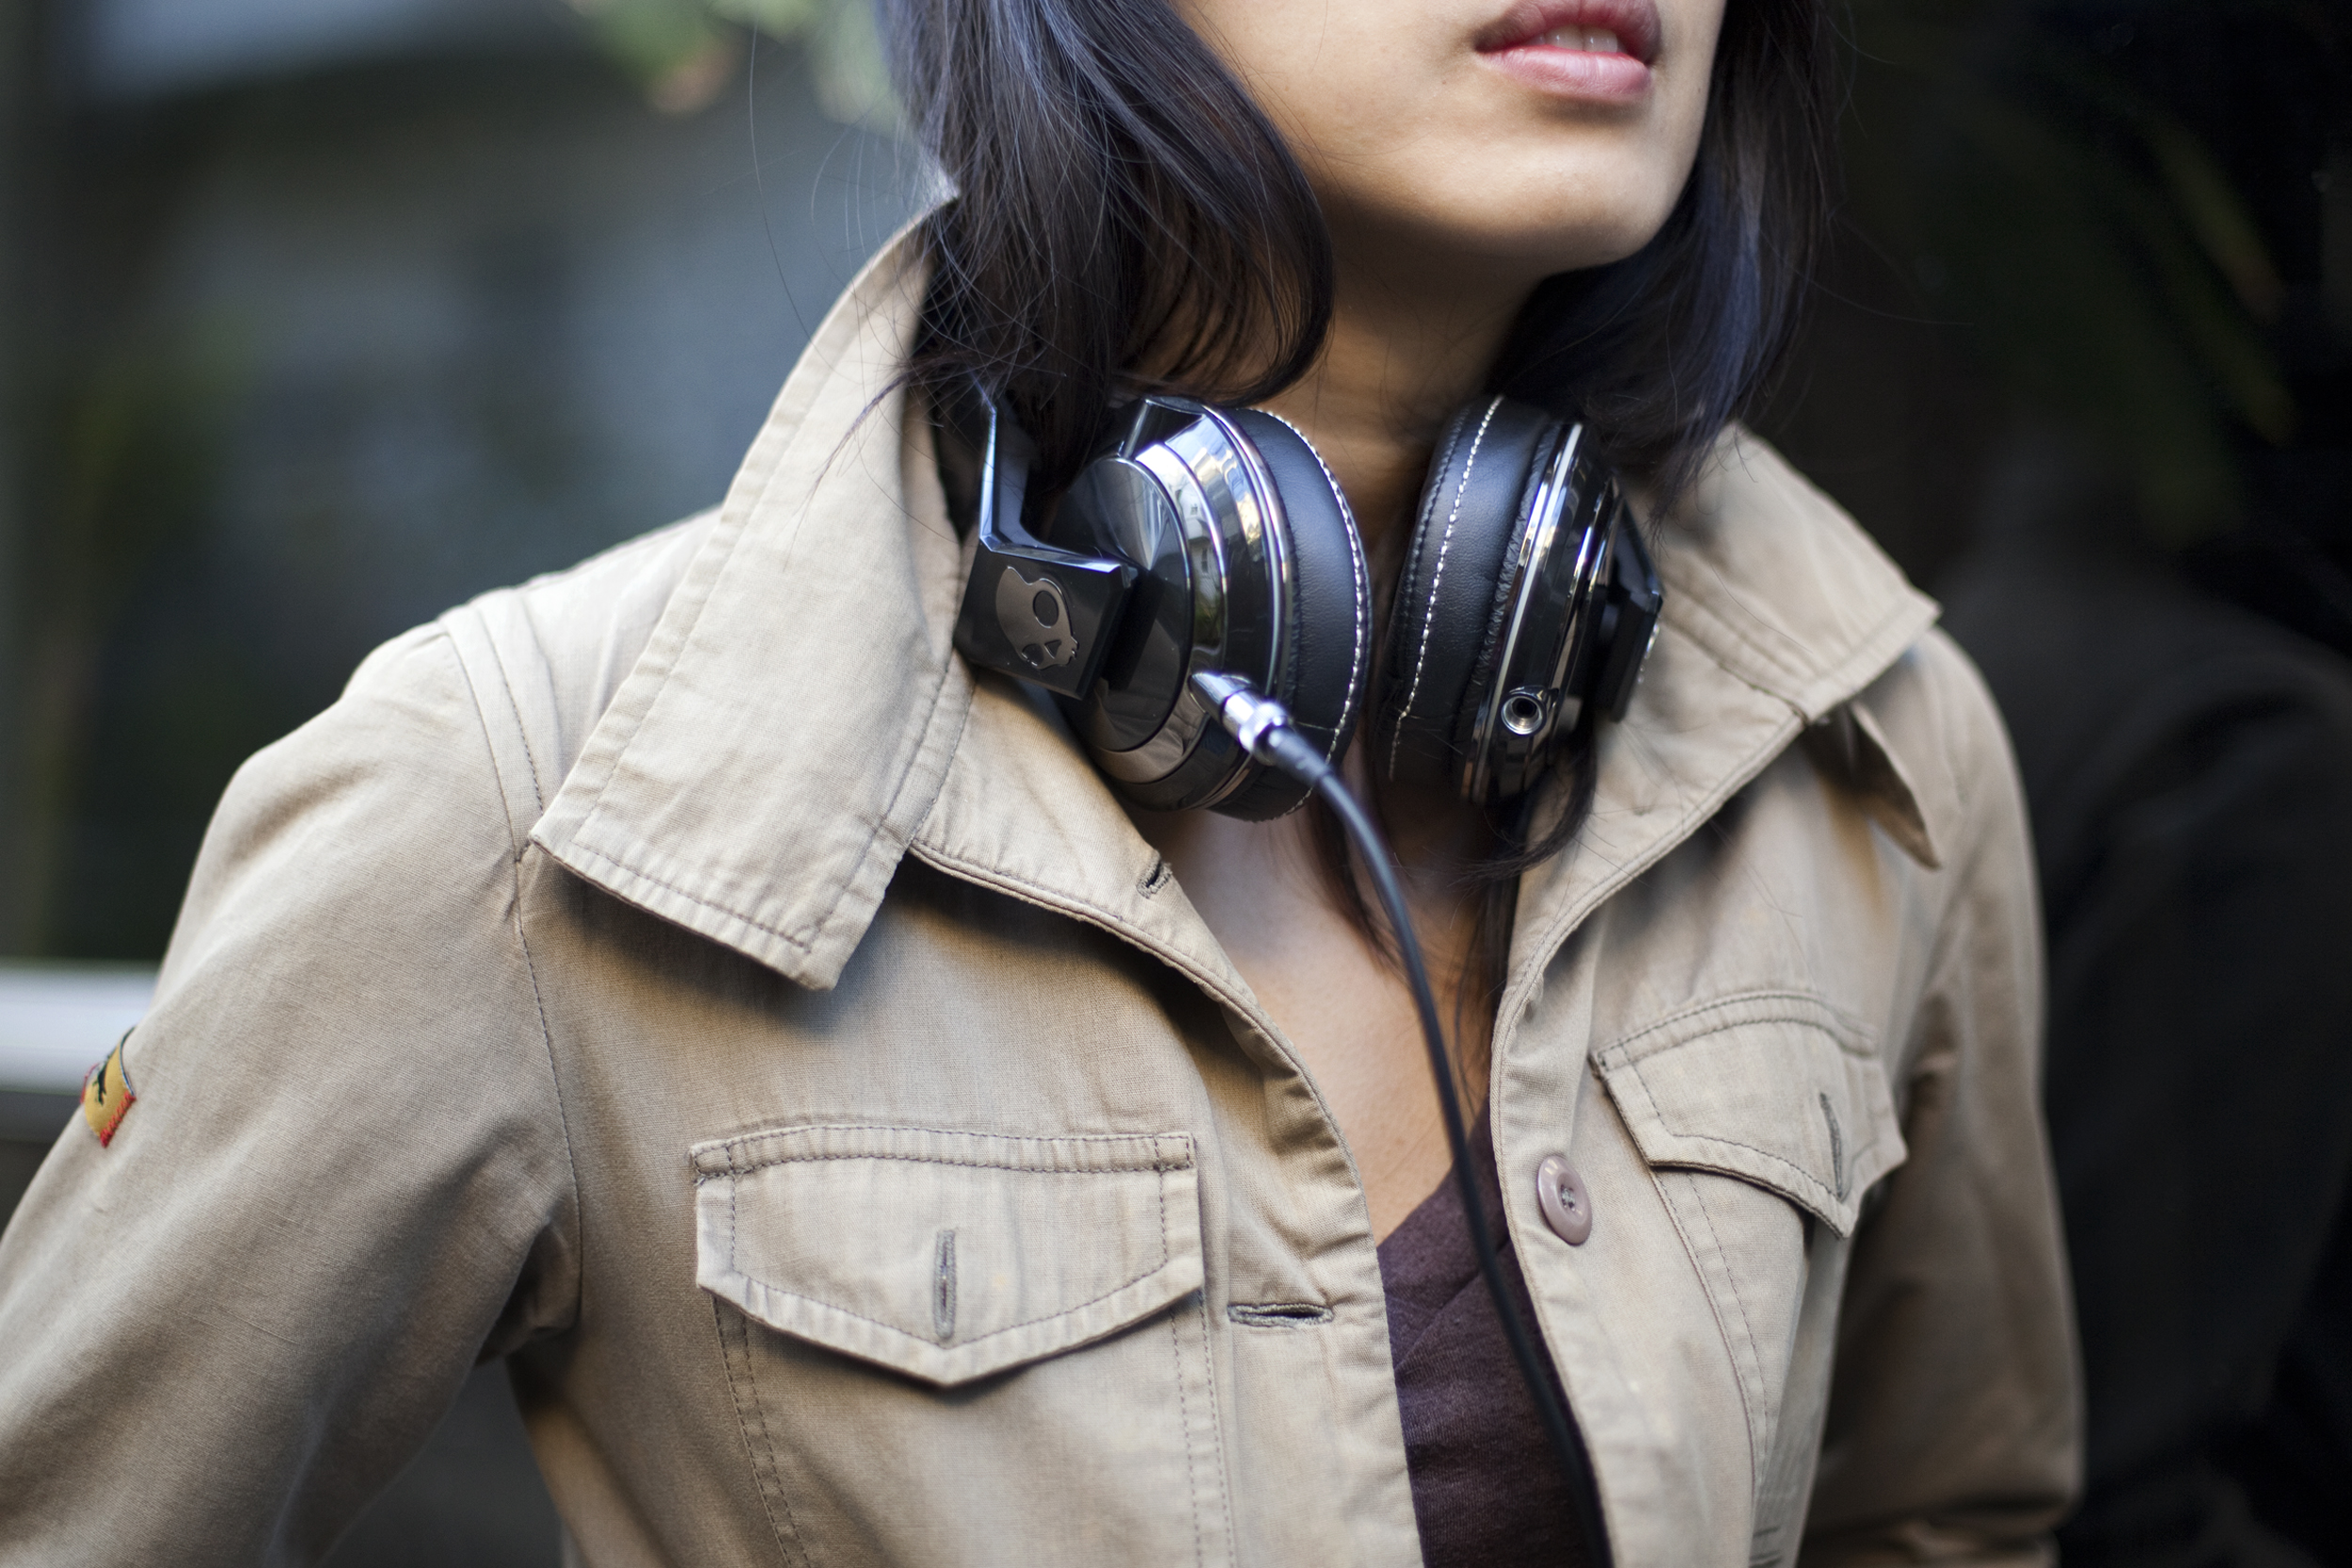 Sometimes it makes sense to put your headphones down and consider if you're going about things the right way. Pic from: Wired.com